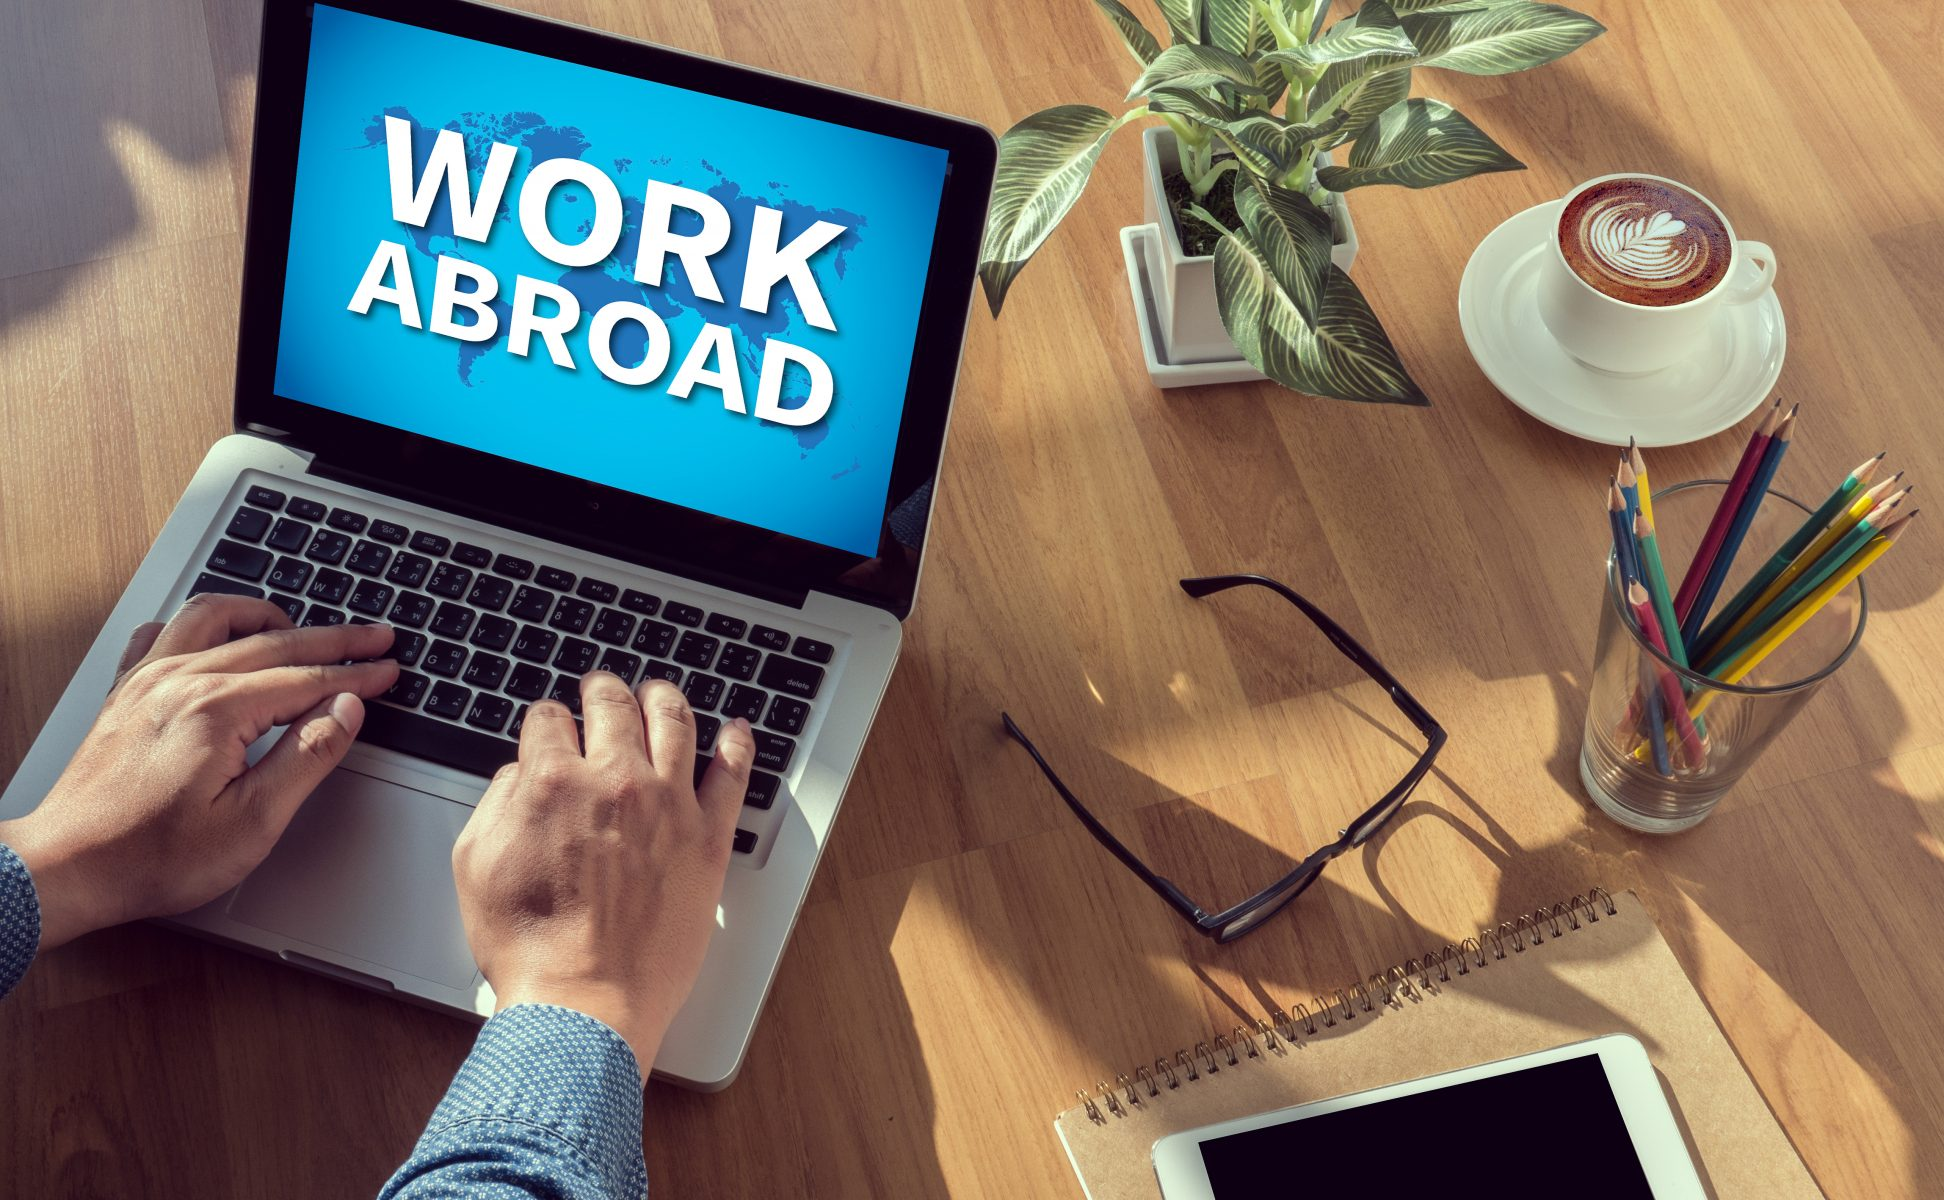 Find out the Benefits of Working Abroad